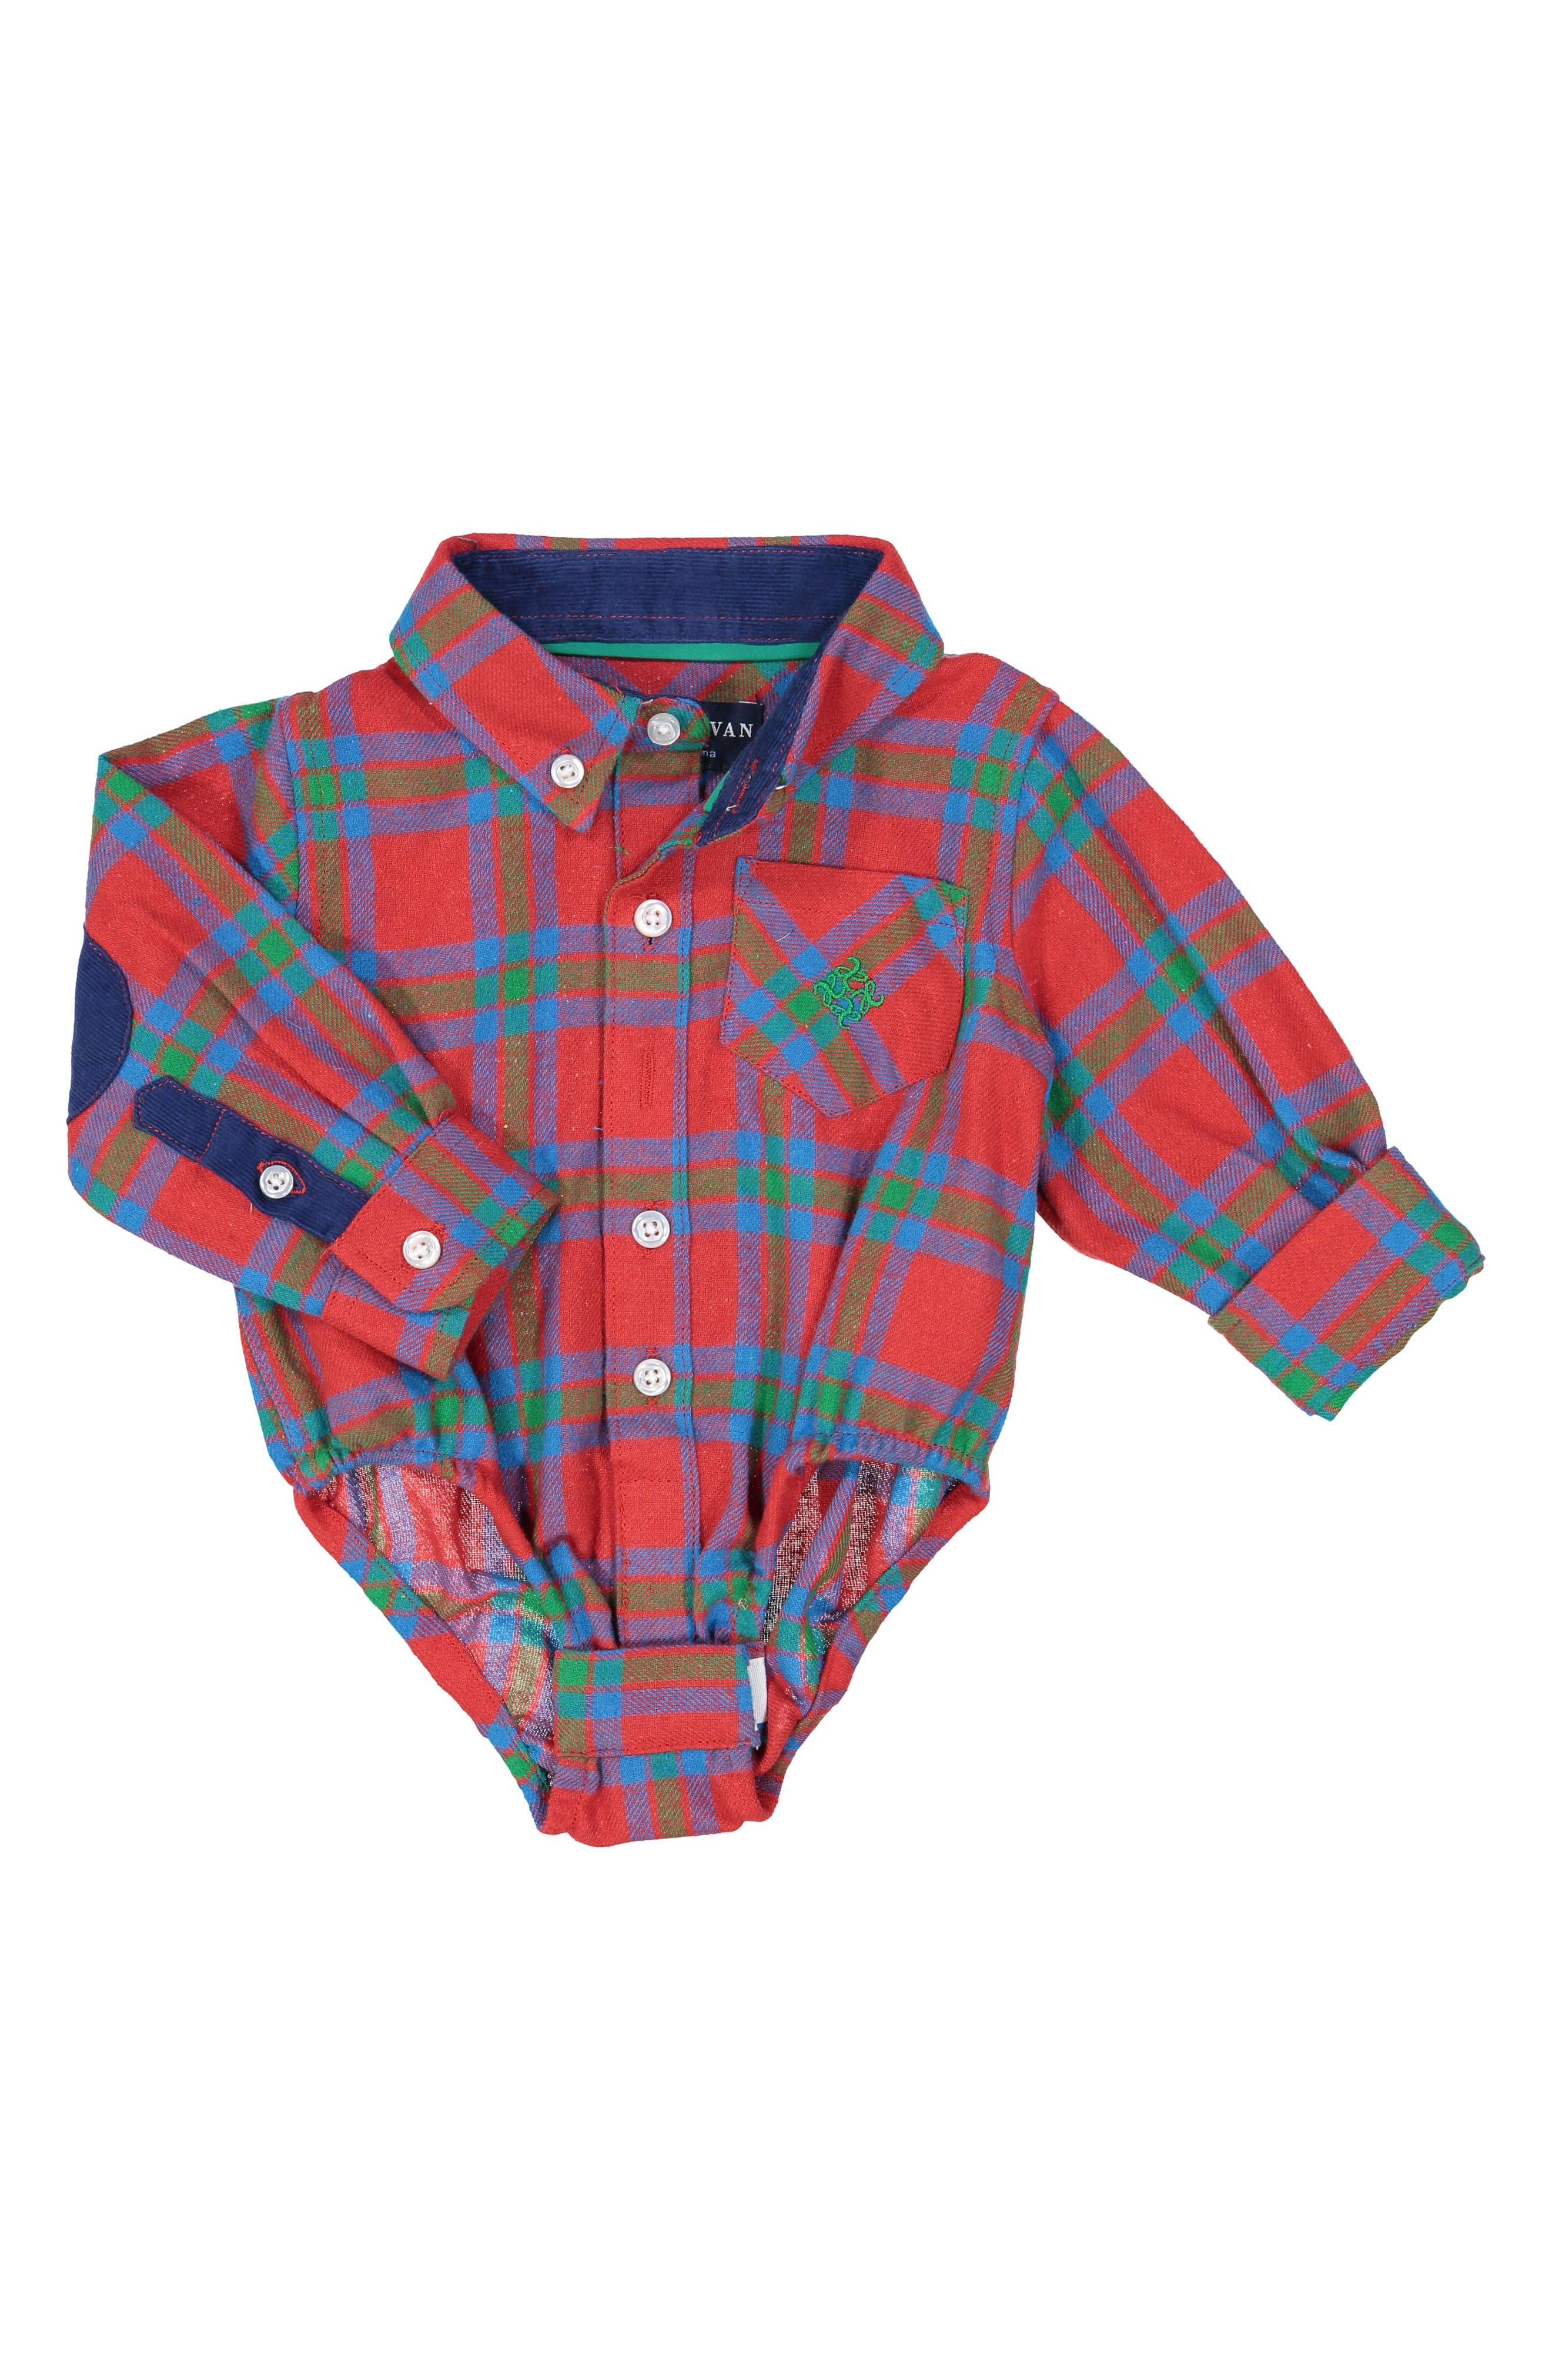 Alternate Image 1 Selected - Andy & Evan Shirtzie Flannel Shirtzie Bodysuit (Baby Boys)